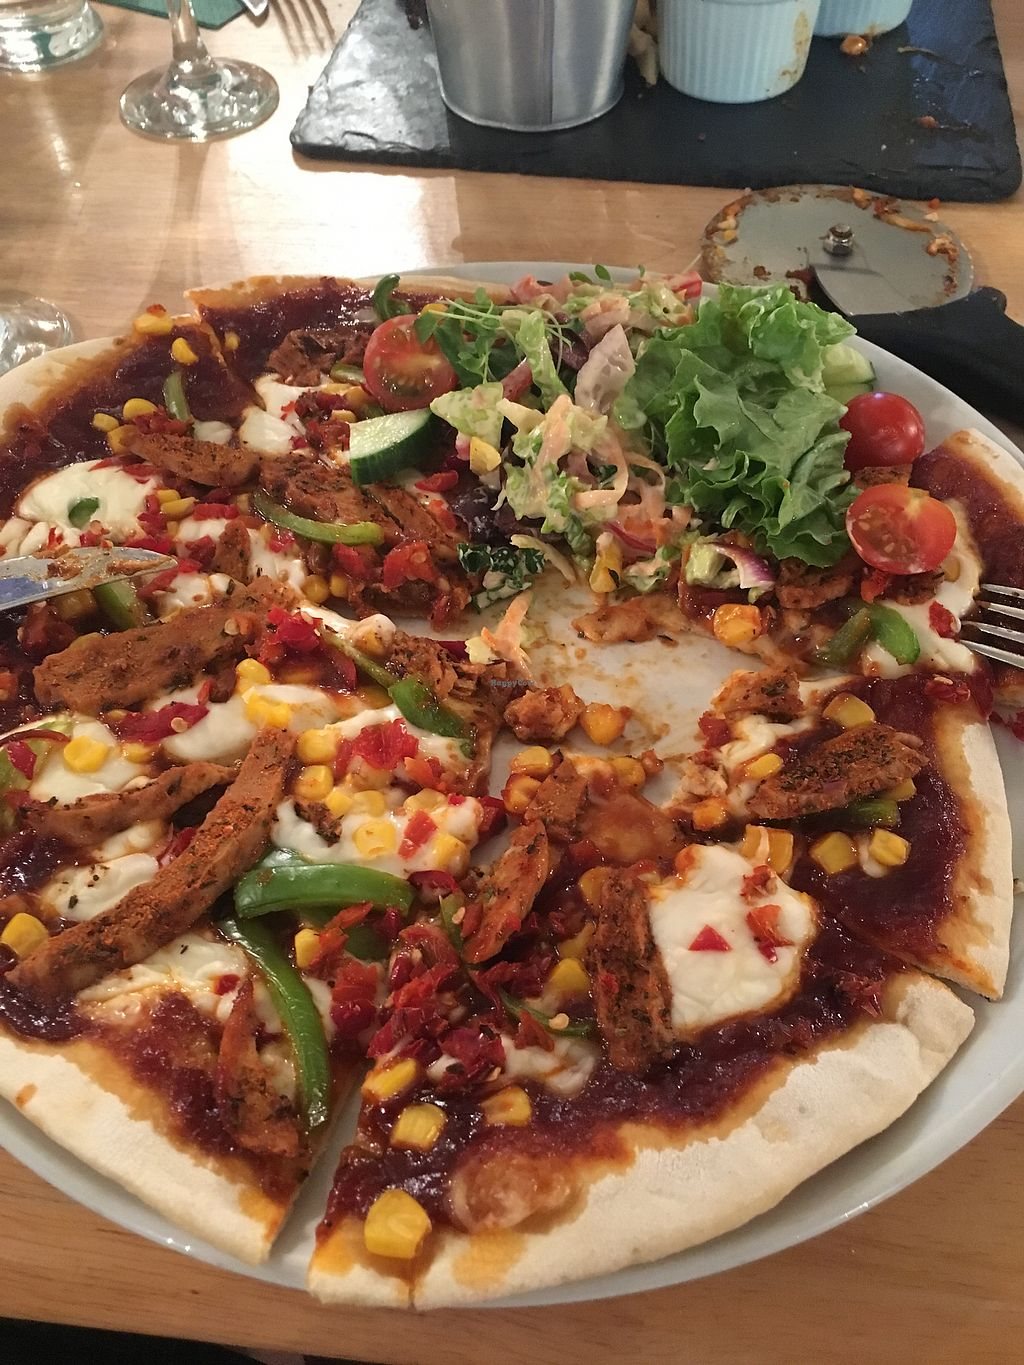 """Photo of Samphire Brasserie  by <a href=""""/members/profile/hack_man"""">hack_man</a> <br/>pizza - taken in a rush by my SW England contact Mr P <br/> July 14, 2017  - <a href='/contact/abuse/image/38330/280364'>Report</a>"""